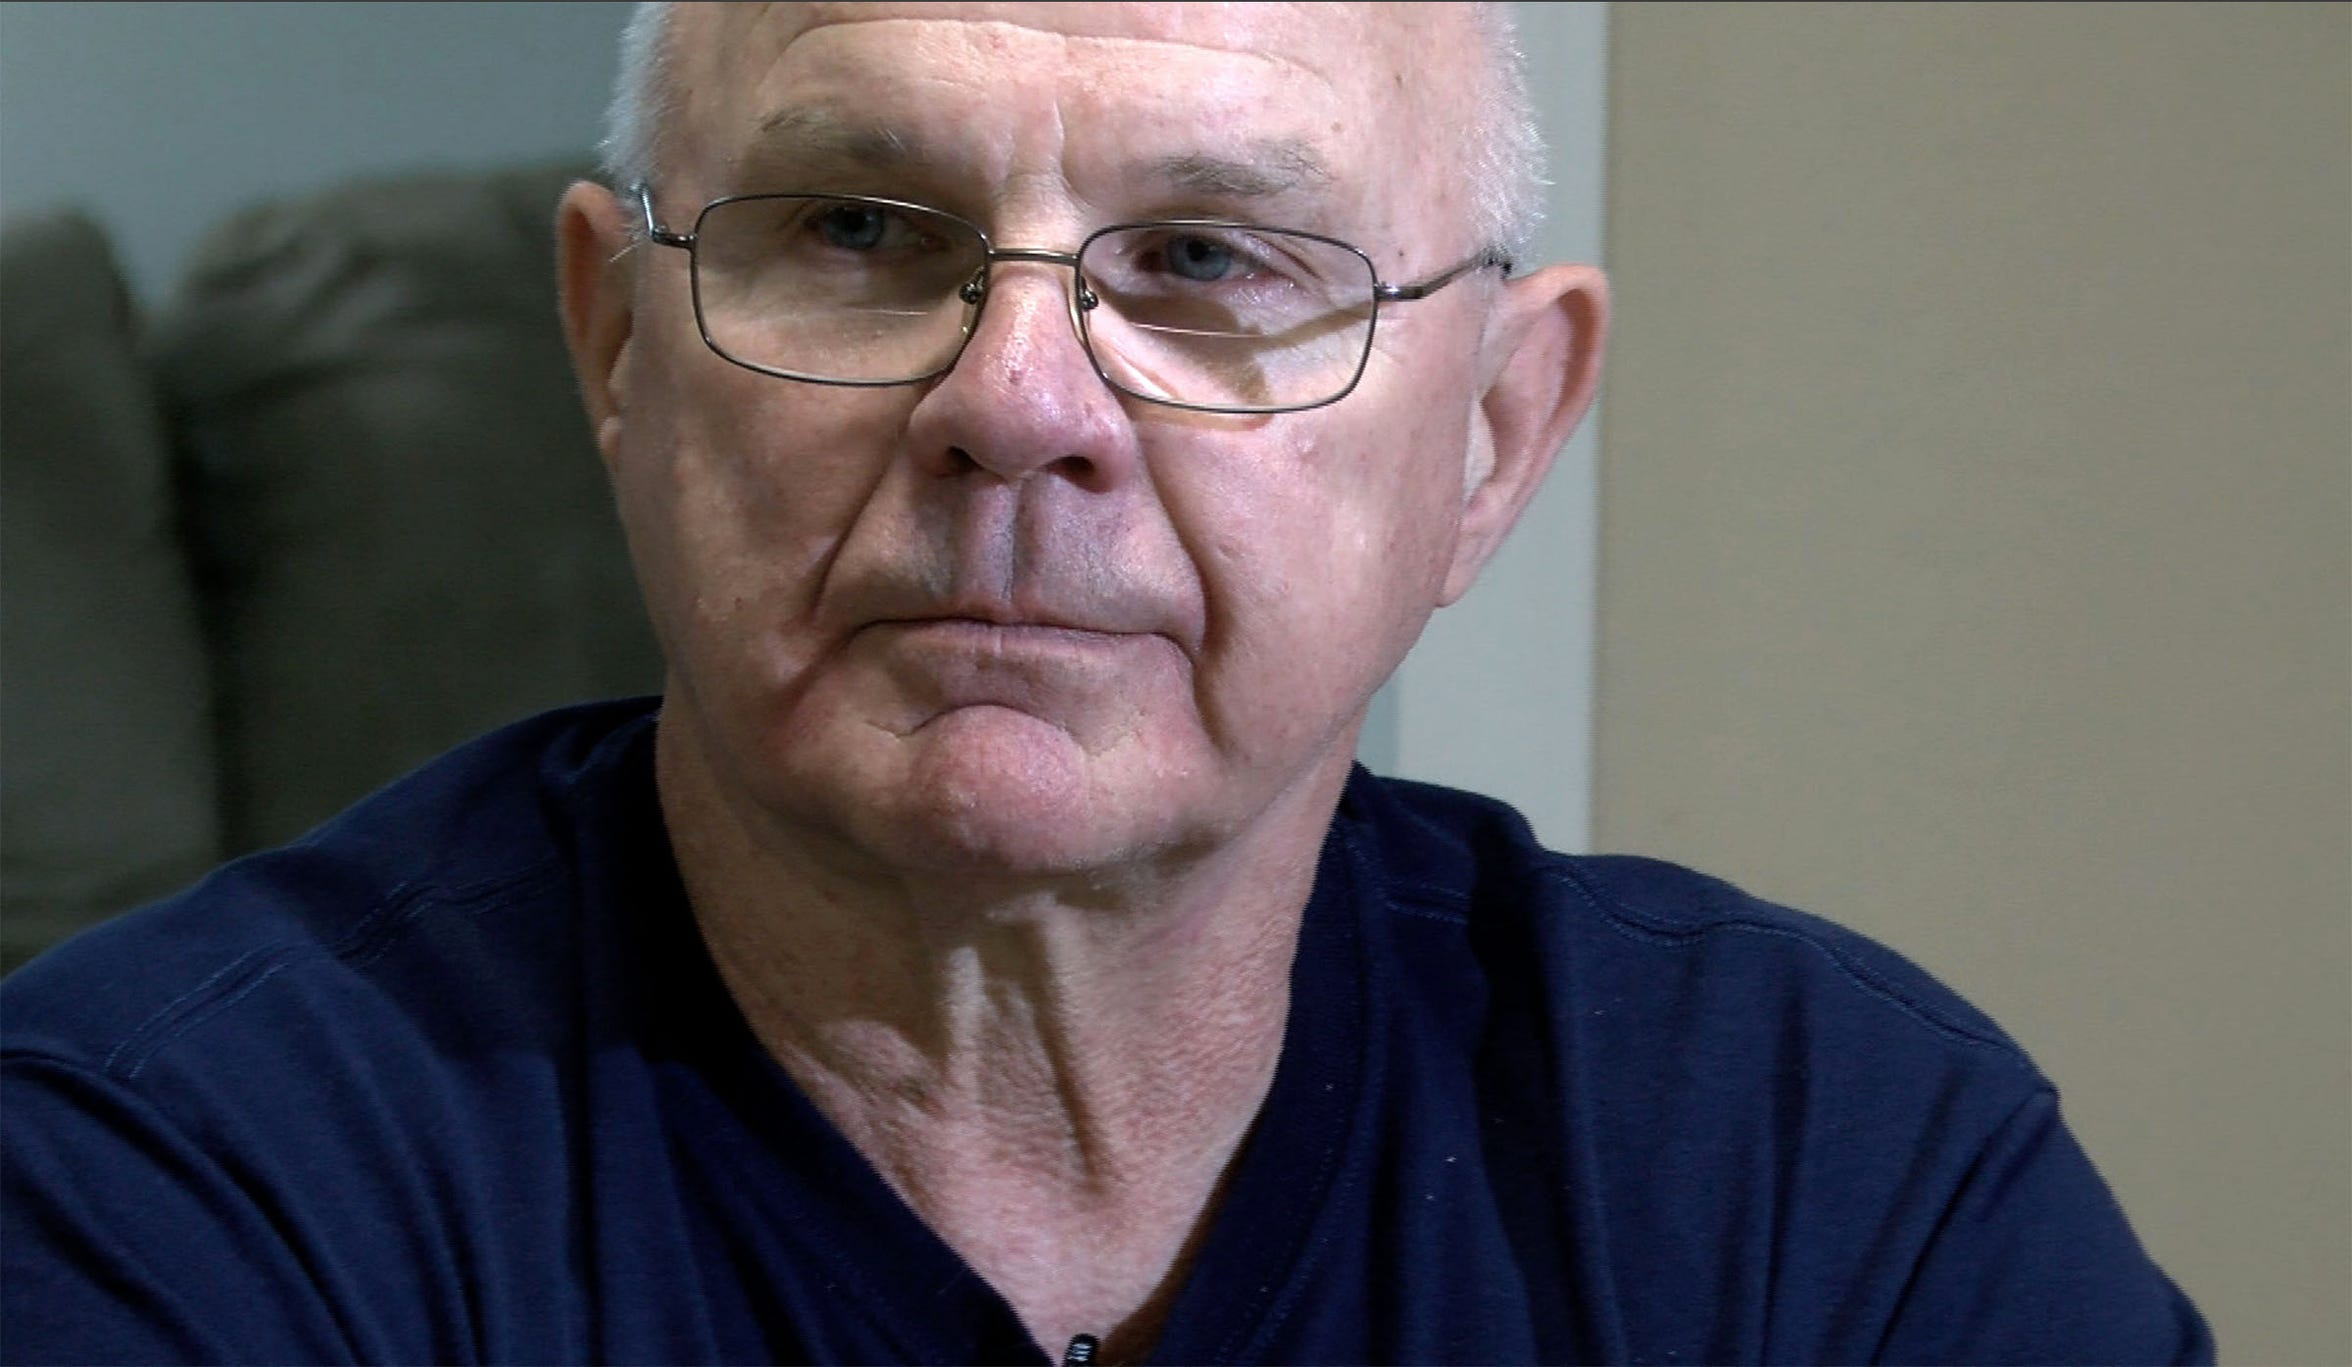 Paul Berkowicz, a former school principal and retired science teacher, is shown during an interview at his Lacey Township home. He's very concerned about the remaining nuclear waste at Oyster Creek and what it will mean for future generations.